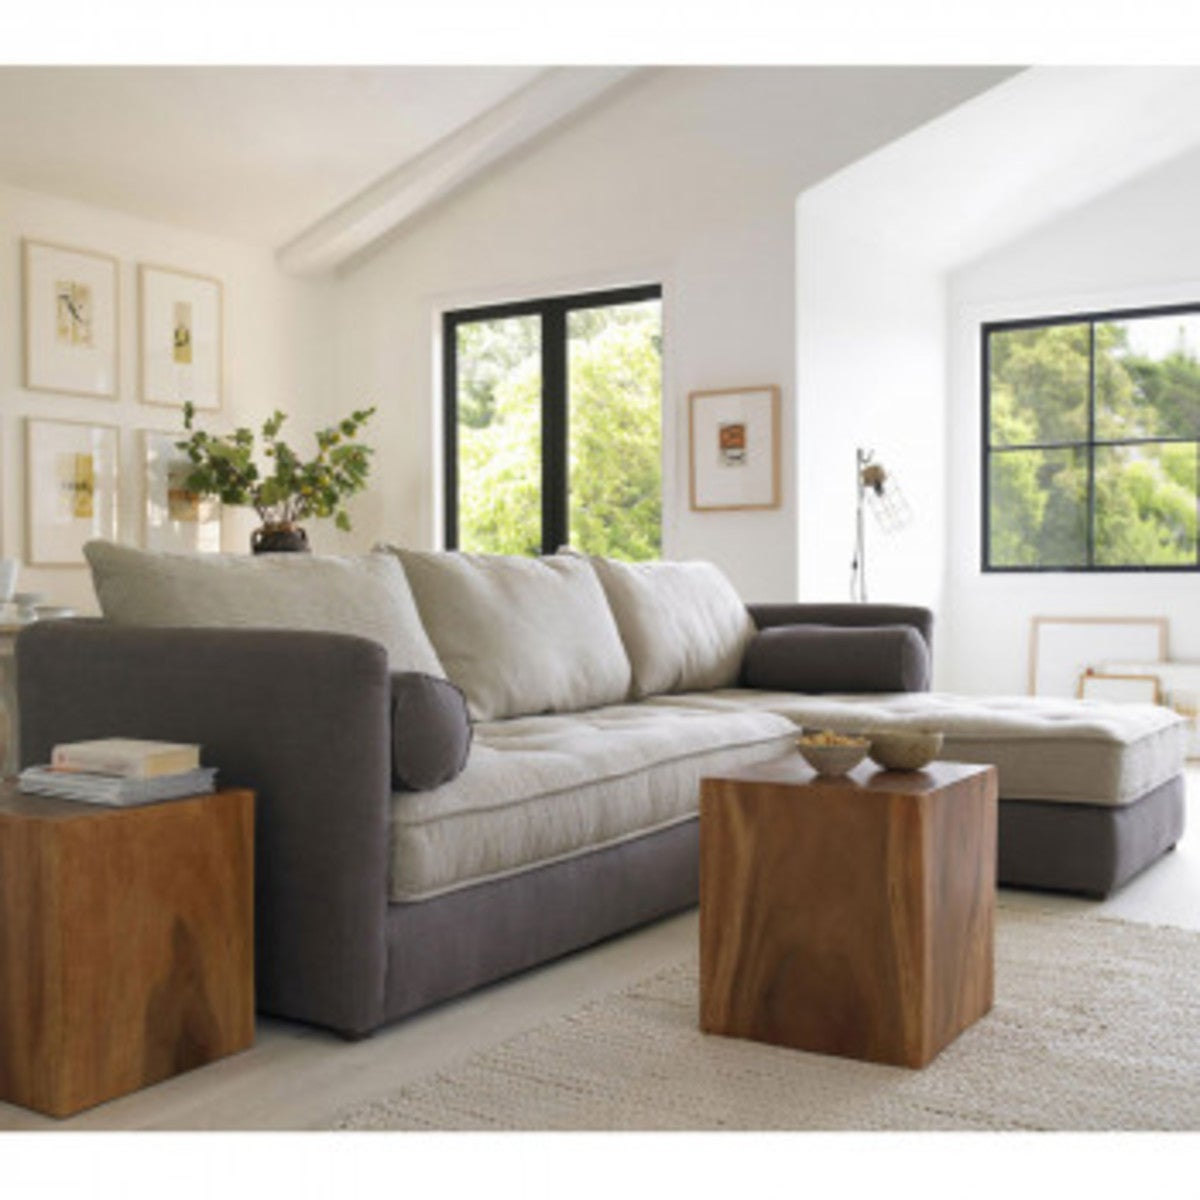 Eco Linen Sectional Sofa with Right Chaise - Moonstone Brussels Linen